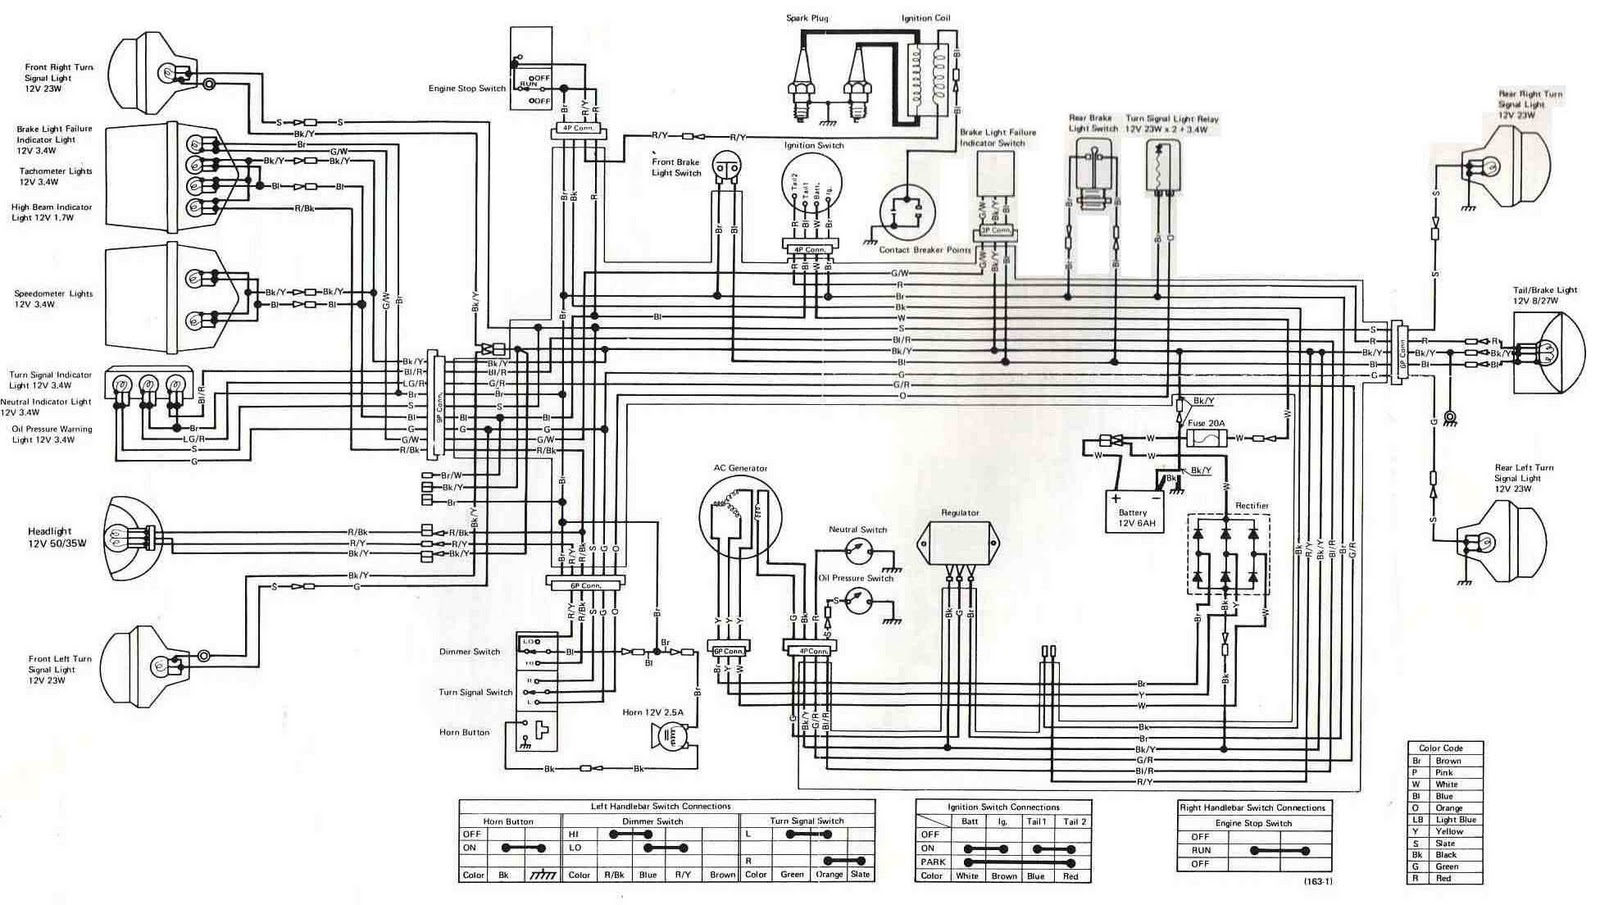 Kawasaki+KZ400+1975+Electrical+Wiring+Diagram kawasaki wiring diagram free toyota wiring diagrams \u2022 wiring kawasaki mule 600 wiring diagram at readyjetset.co